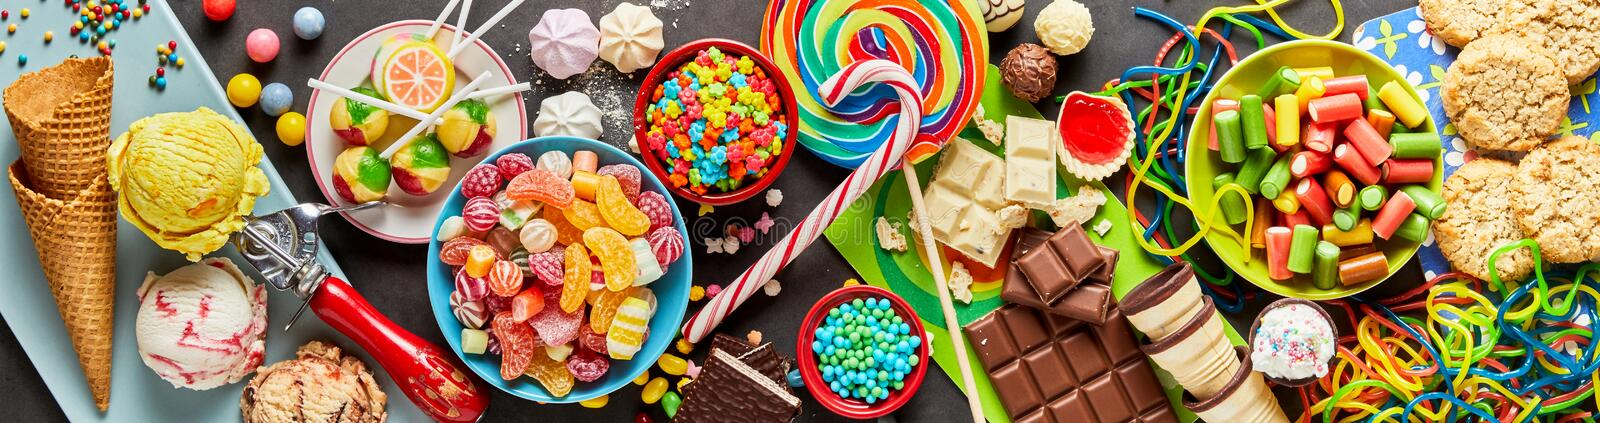 Assortment of colourful, festive sweets and candy royalty free stock images